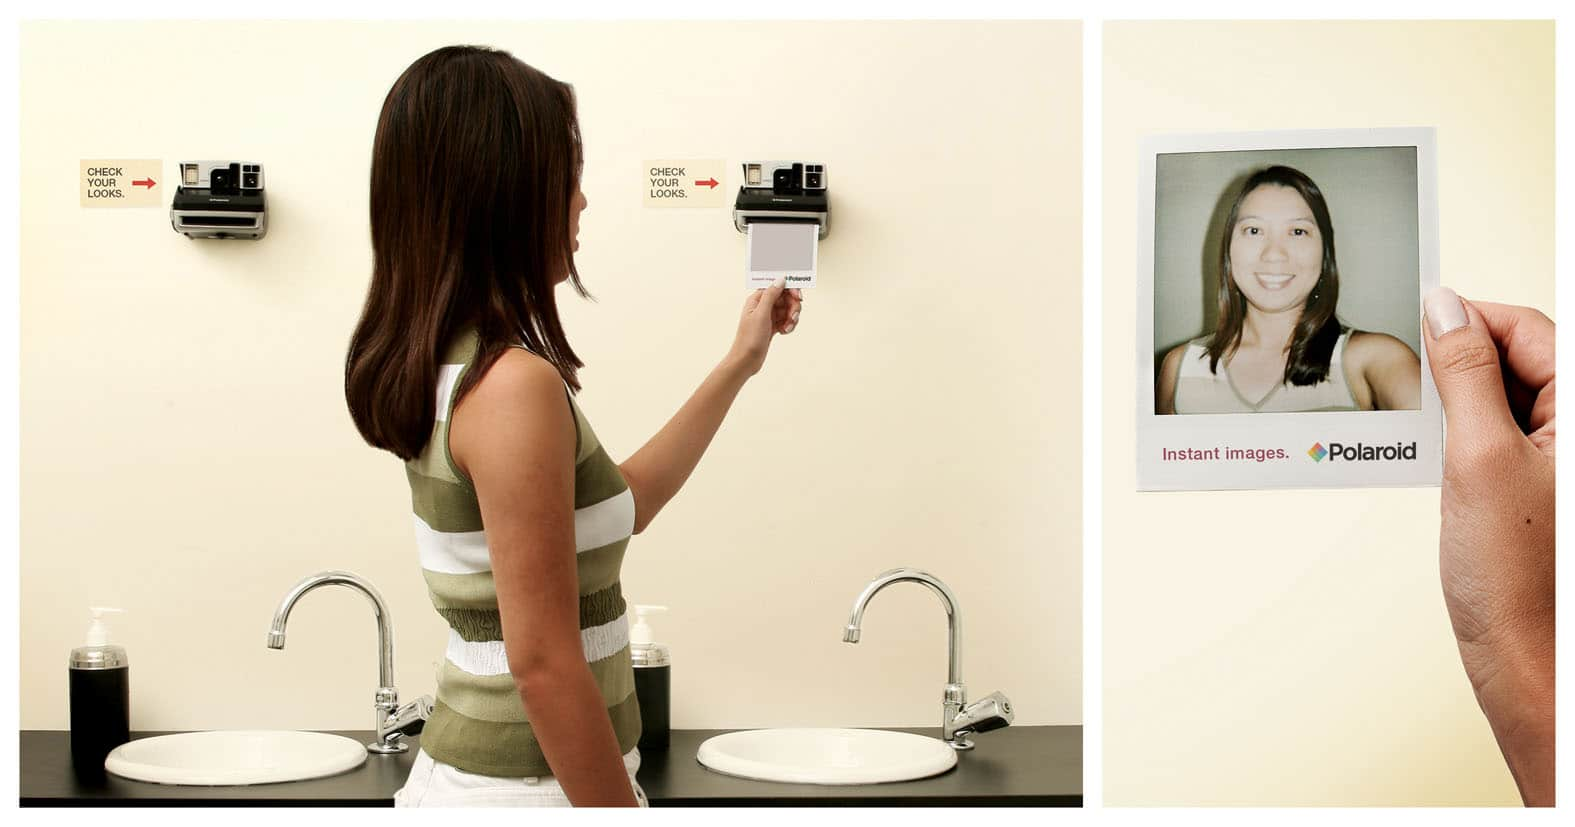 See Yourself Instantly: The Polaroid Picture Bathroom Mirror